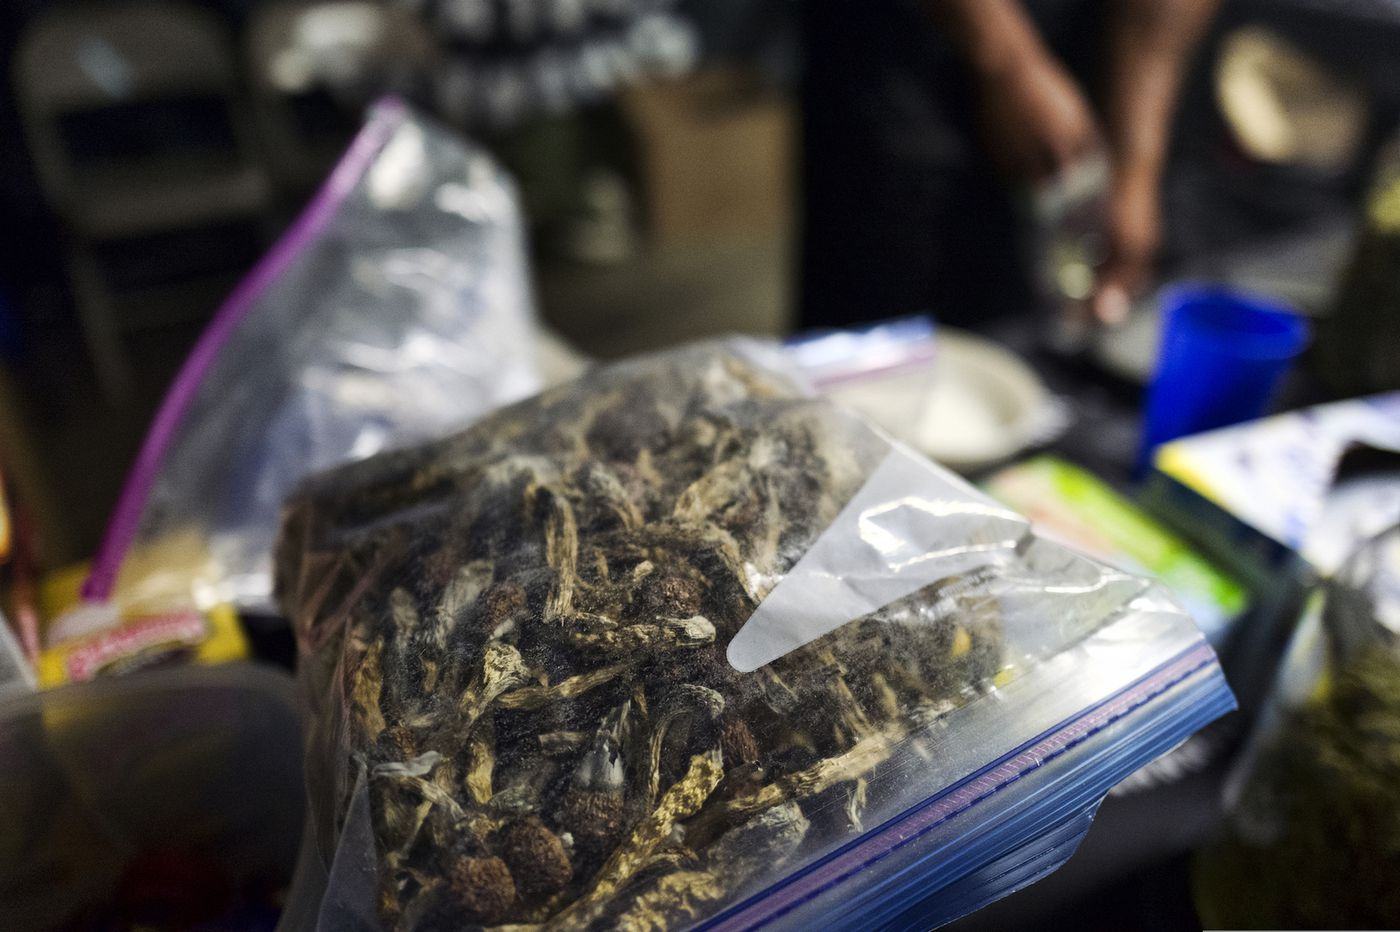 Psilocybin, the psychoactive ingredient in 'magic' mushrooms, is decriminalised in Denver